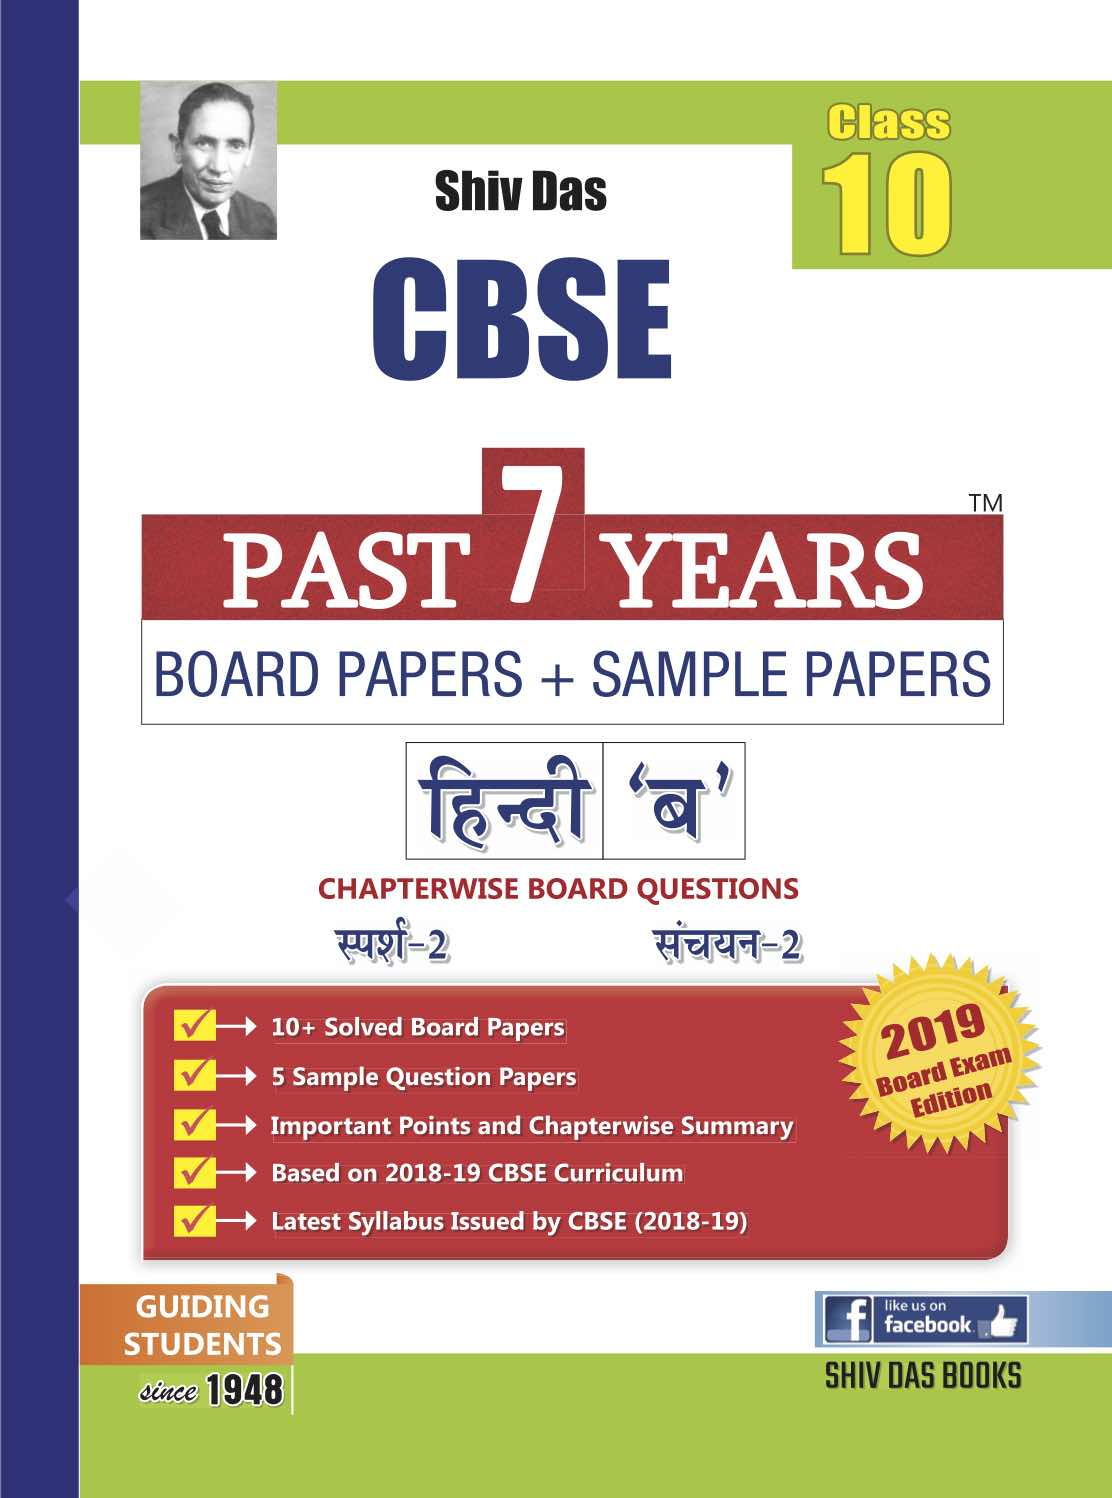 CBSE Past 7 Years Solved Board Papers+Sample Papers for Class 10 Hindi-B (2019 Board Exam Edition)